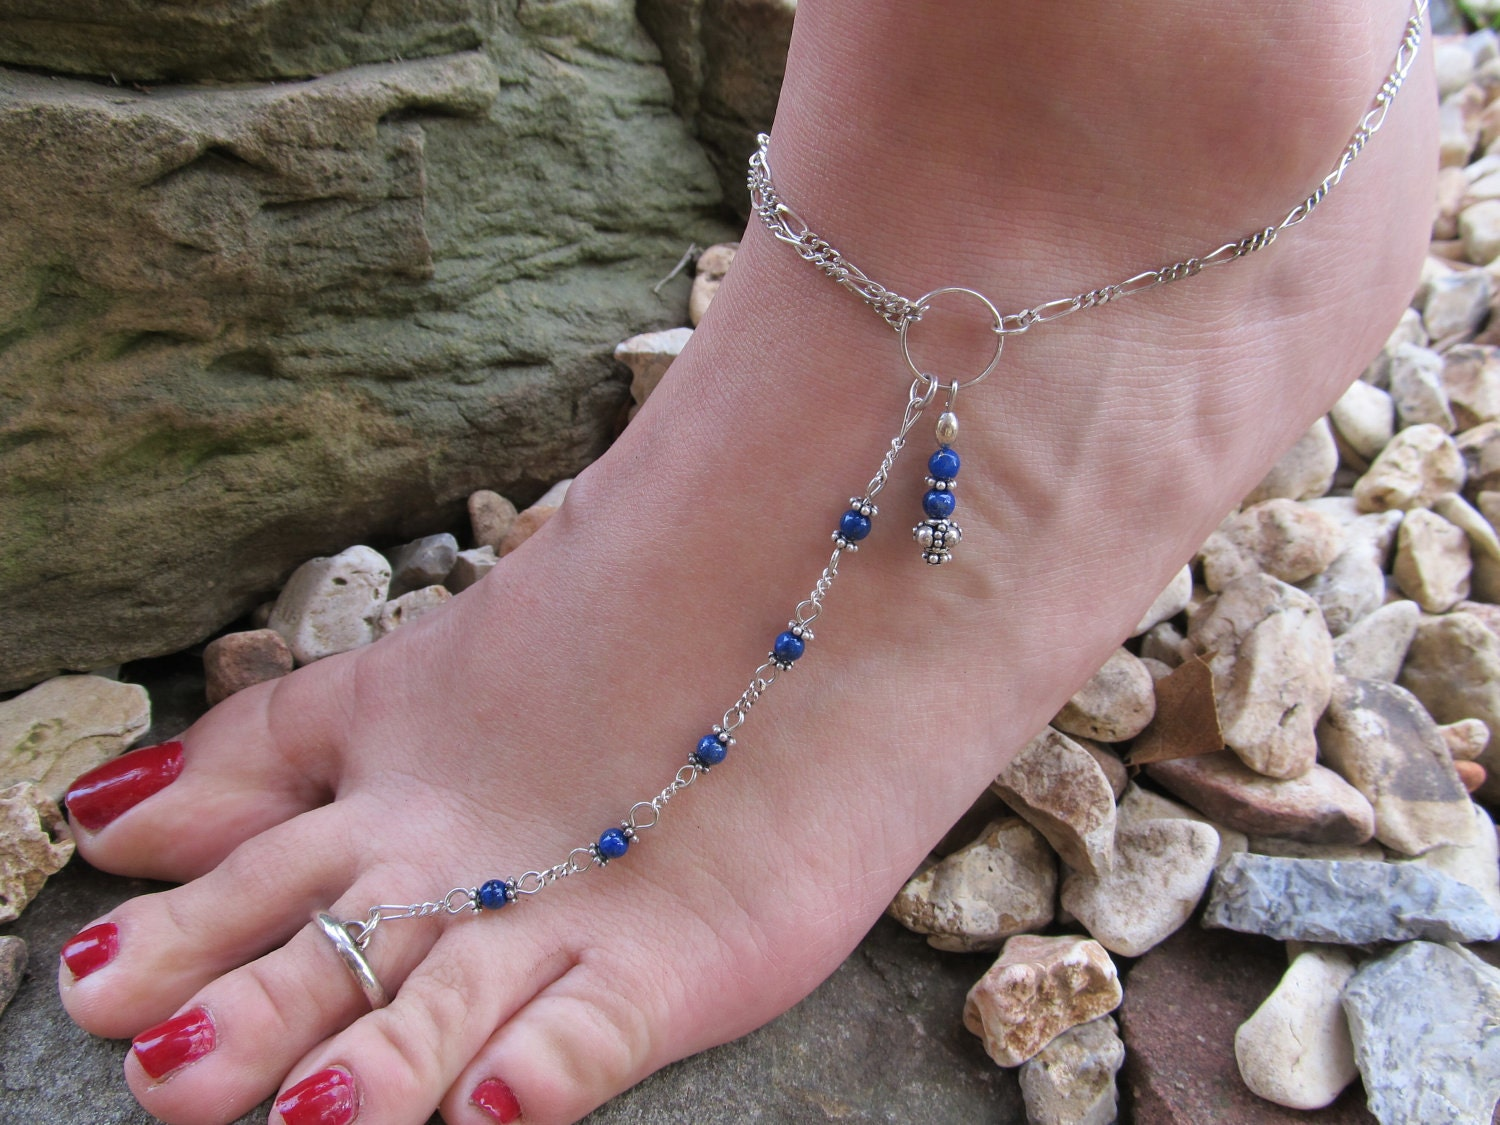 Anklet Deep Blue Lapis Sterling Silver Ankle Bracelet Toe Ring